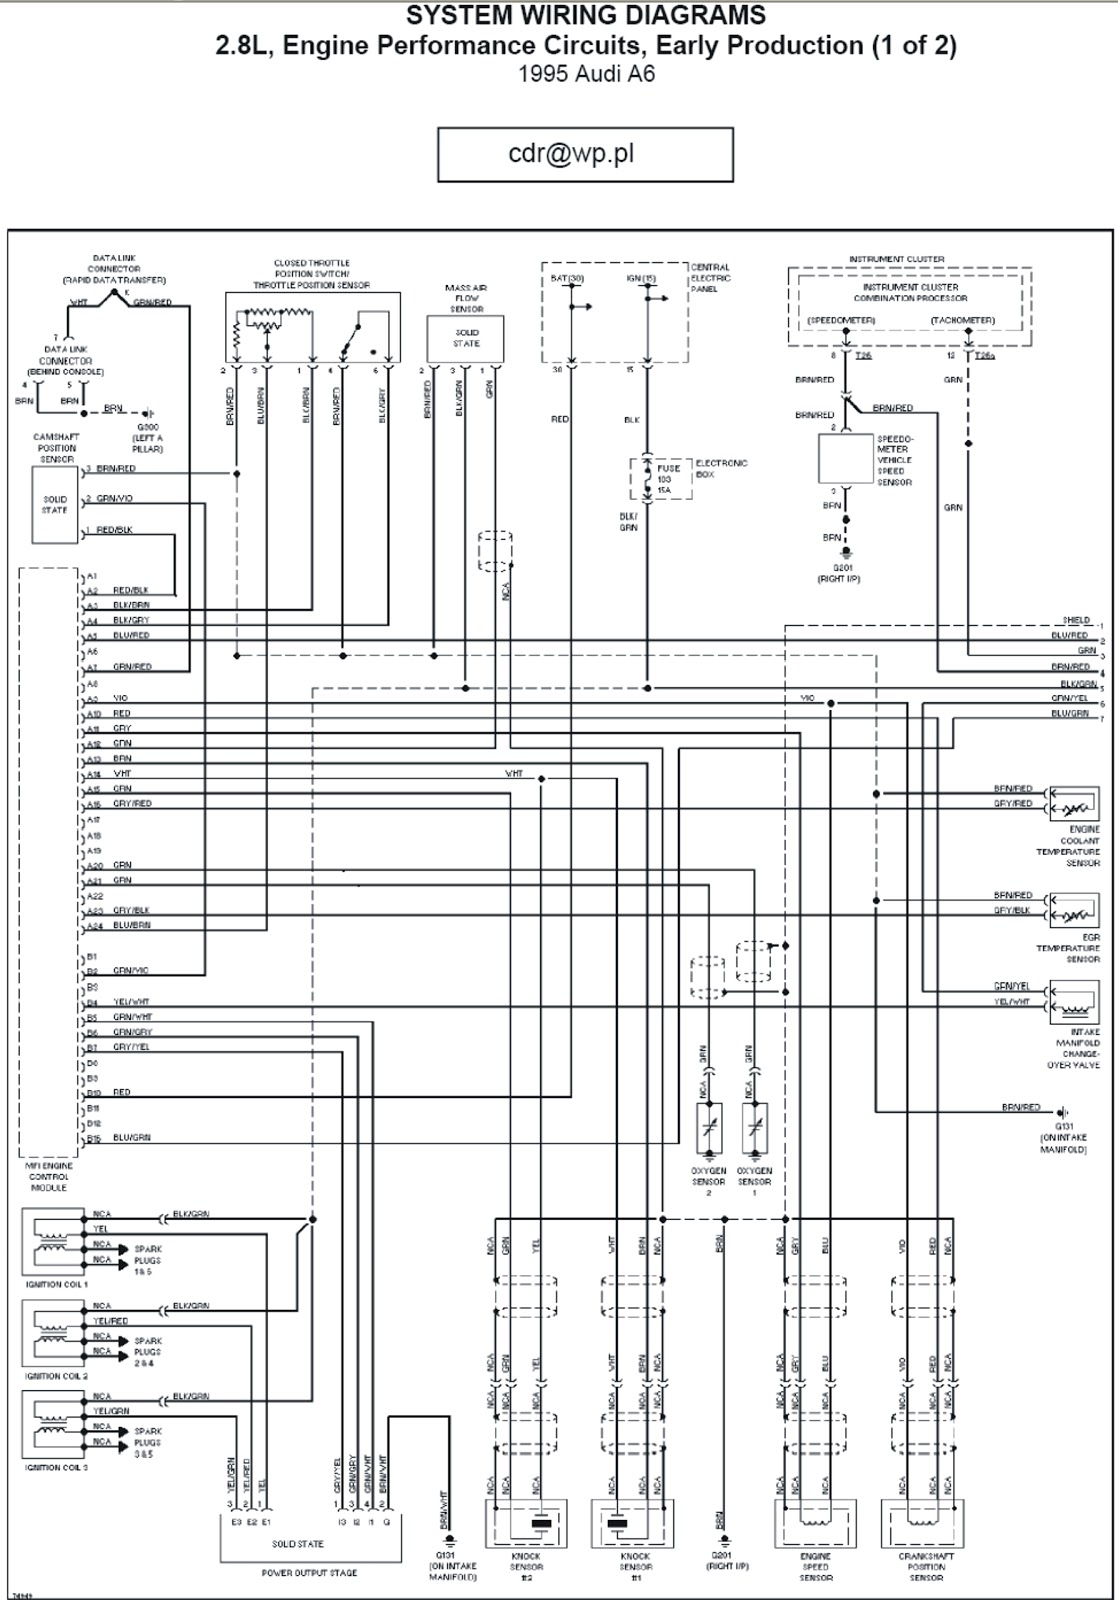 2002 Ford F750 Wiring Diagram For 2 Sd Libraries Audi A6 Trusted Online2006 Todays